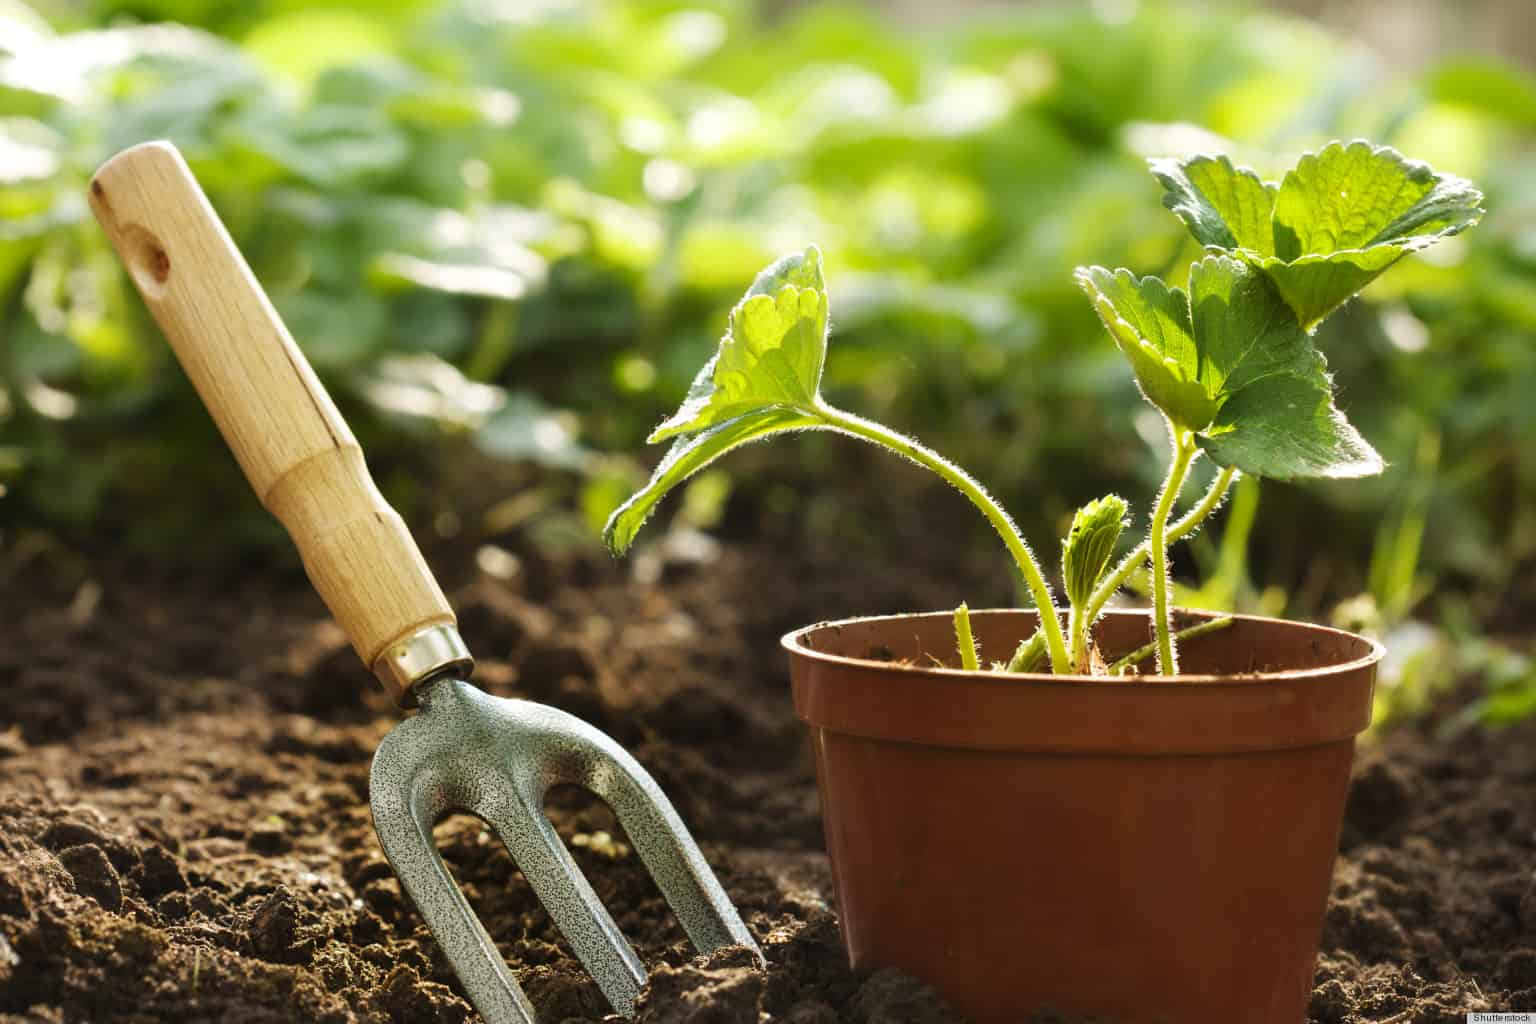 Gardening – hobbies for men